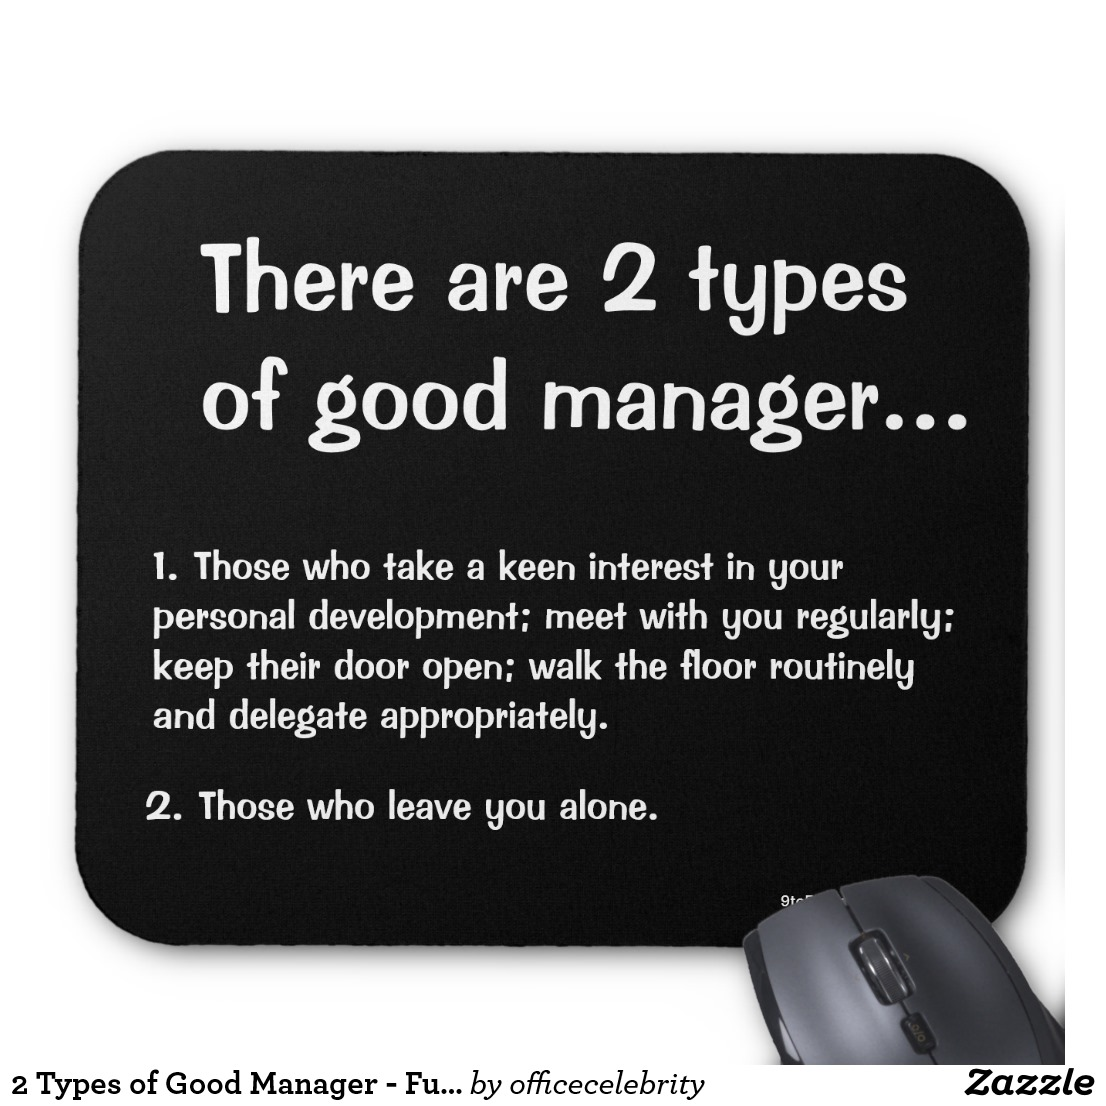 become good manager essay The article that i chose to write about is titled, what makes a good manager many have their own thoughts on what different traits are needed to become a good manager, but the importance of those traits varies from person to person.